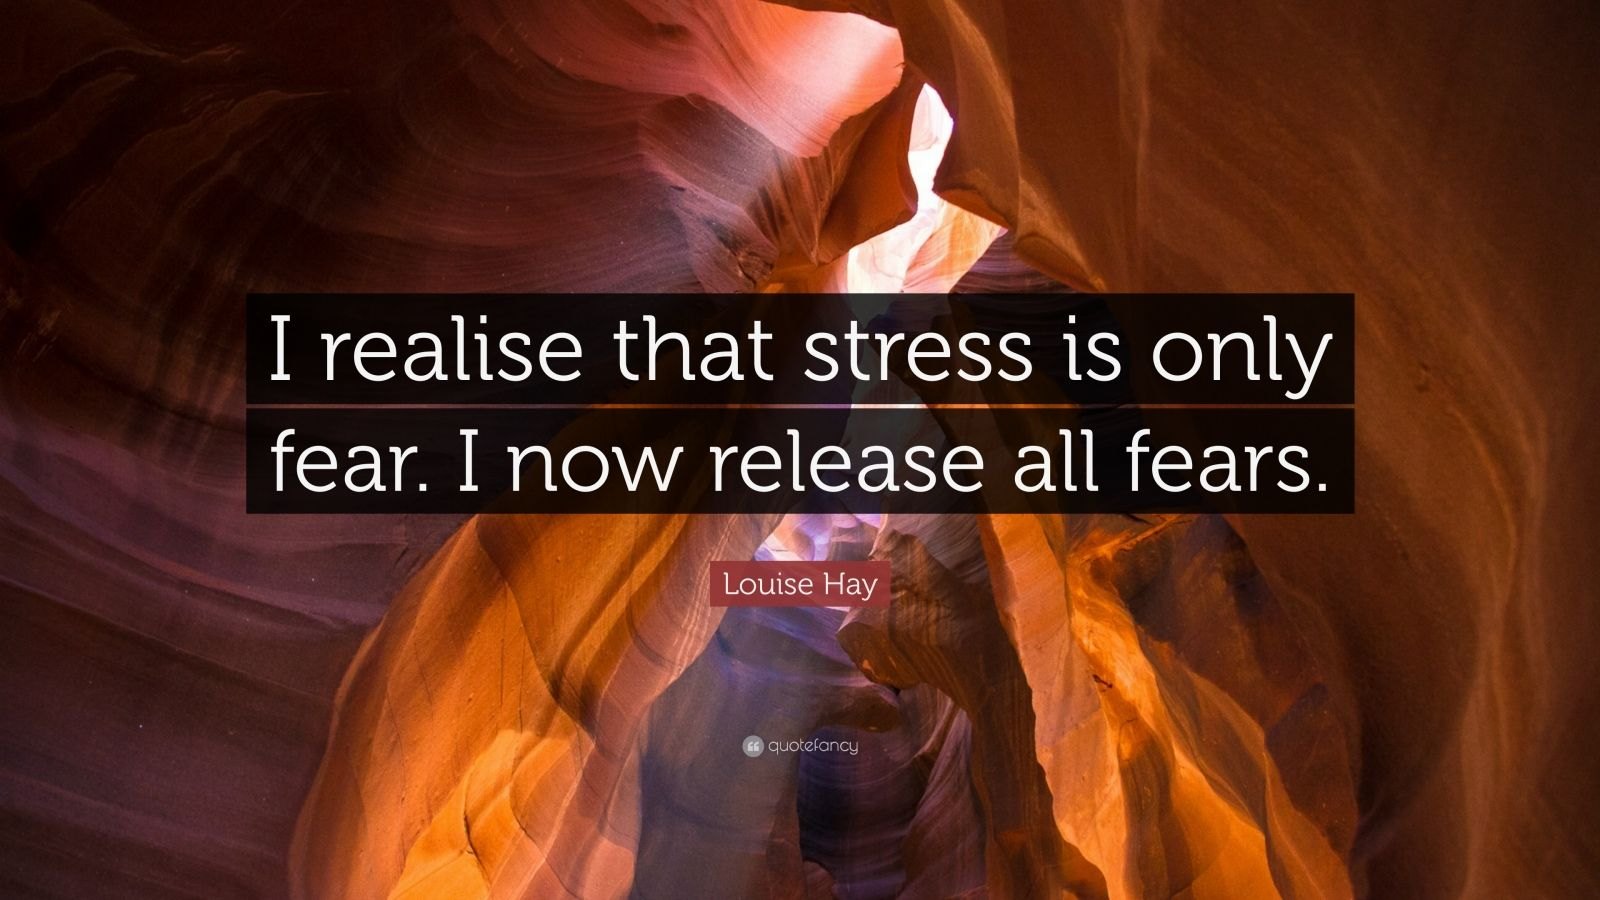 """Louise Hay Quote: """"I realise that stress is only fear. I now release all fears."""""""